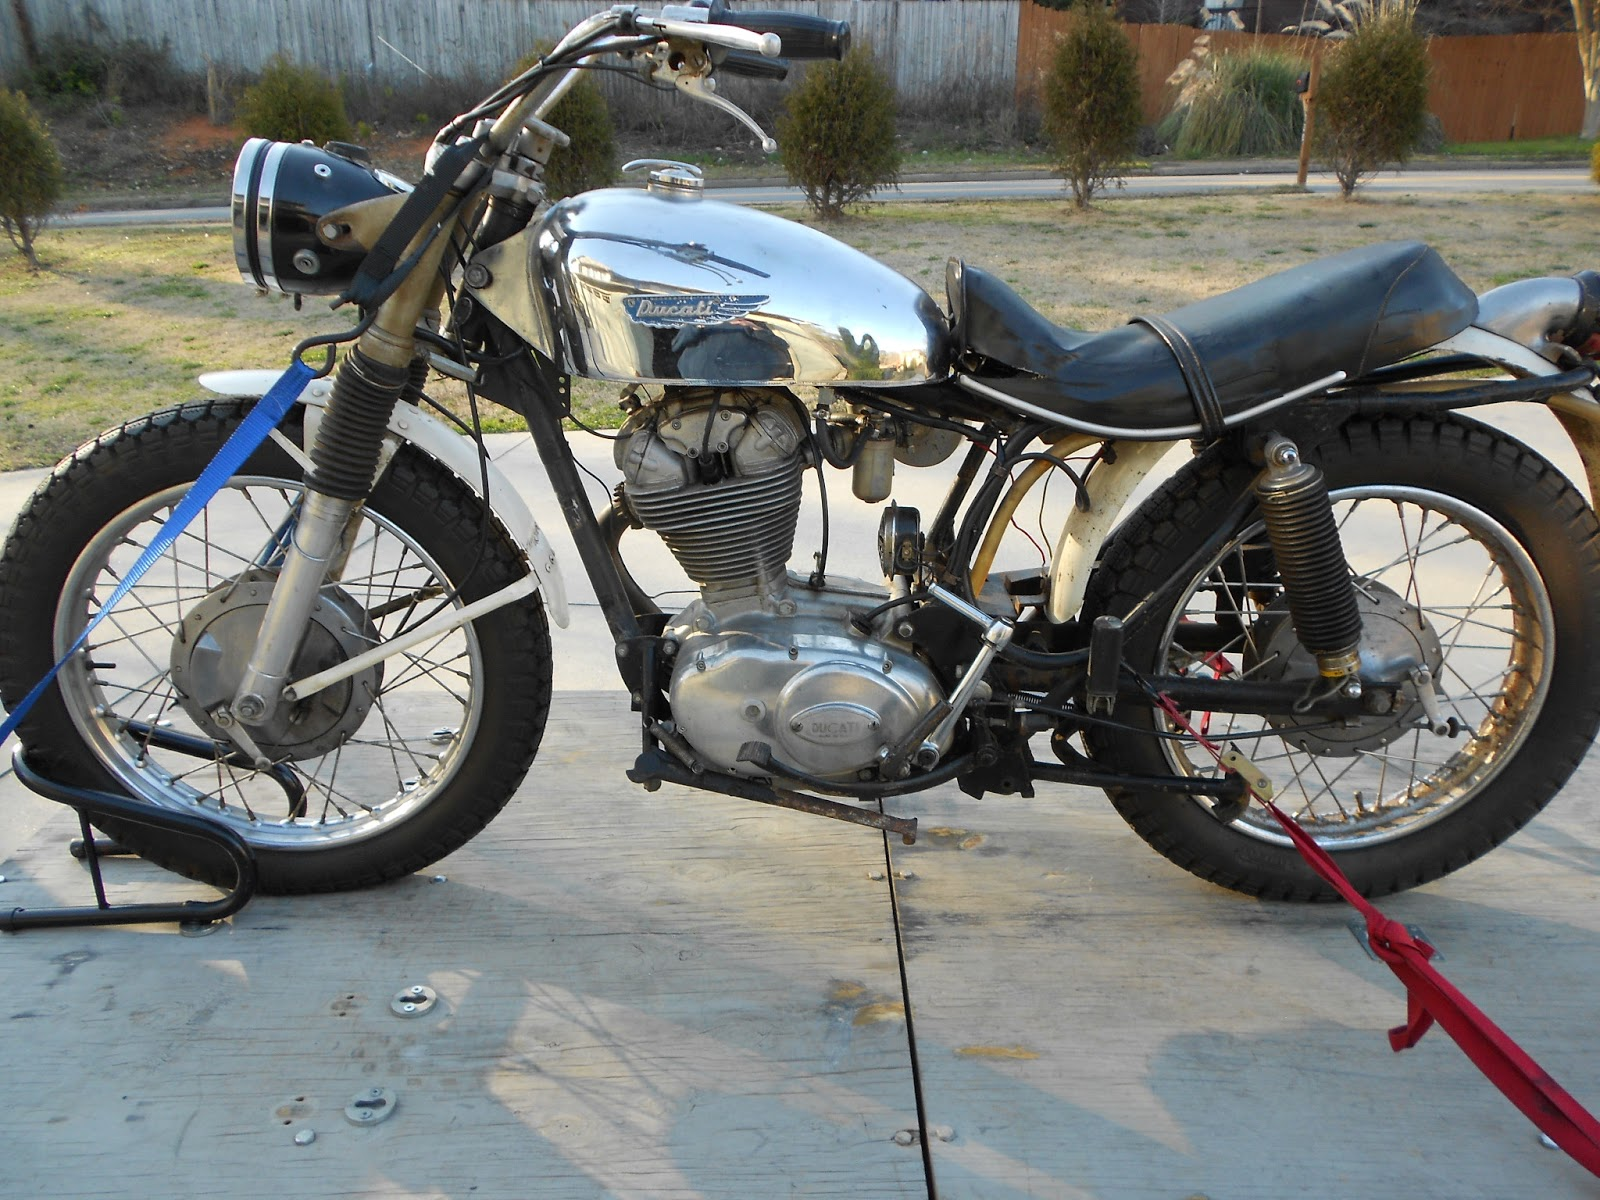 Ducati Darmah Wiring Loom 1969 Scrambler Restoration Long Story Short We Loaded One Of The Scramblers Up Went To His Bank Arrange A Wire Transfer And Voila I Had My New Project